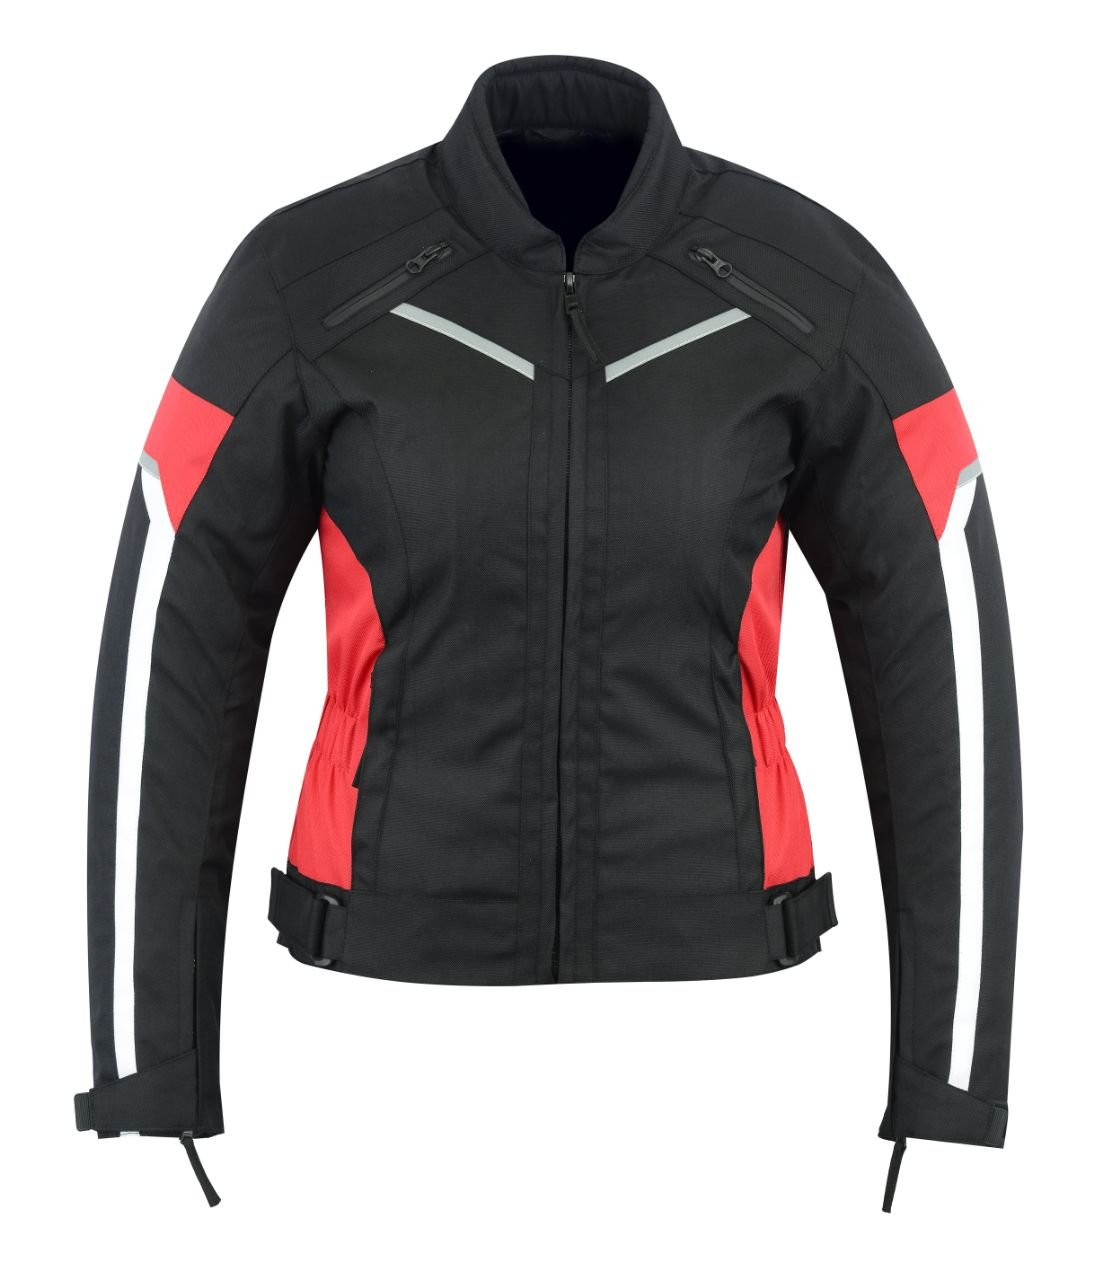 WOMENS MOTORCYCLE ARMORED HIGH PROTECTION WITH ARMOR MESH WATERPROOF ALL WEATHERS JACKET BLACK/RED WJ-1834R (XL)